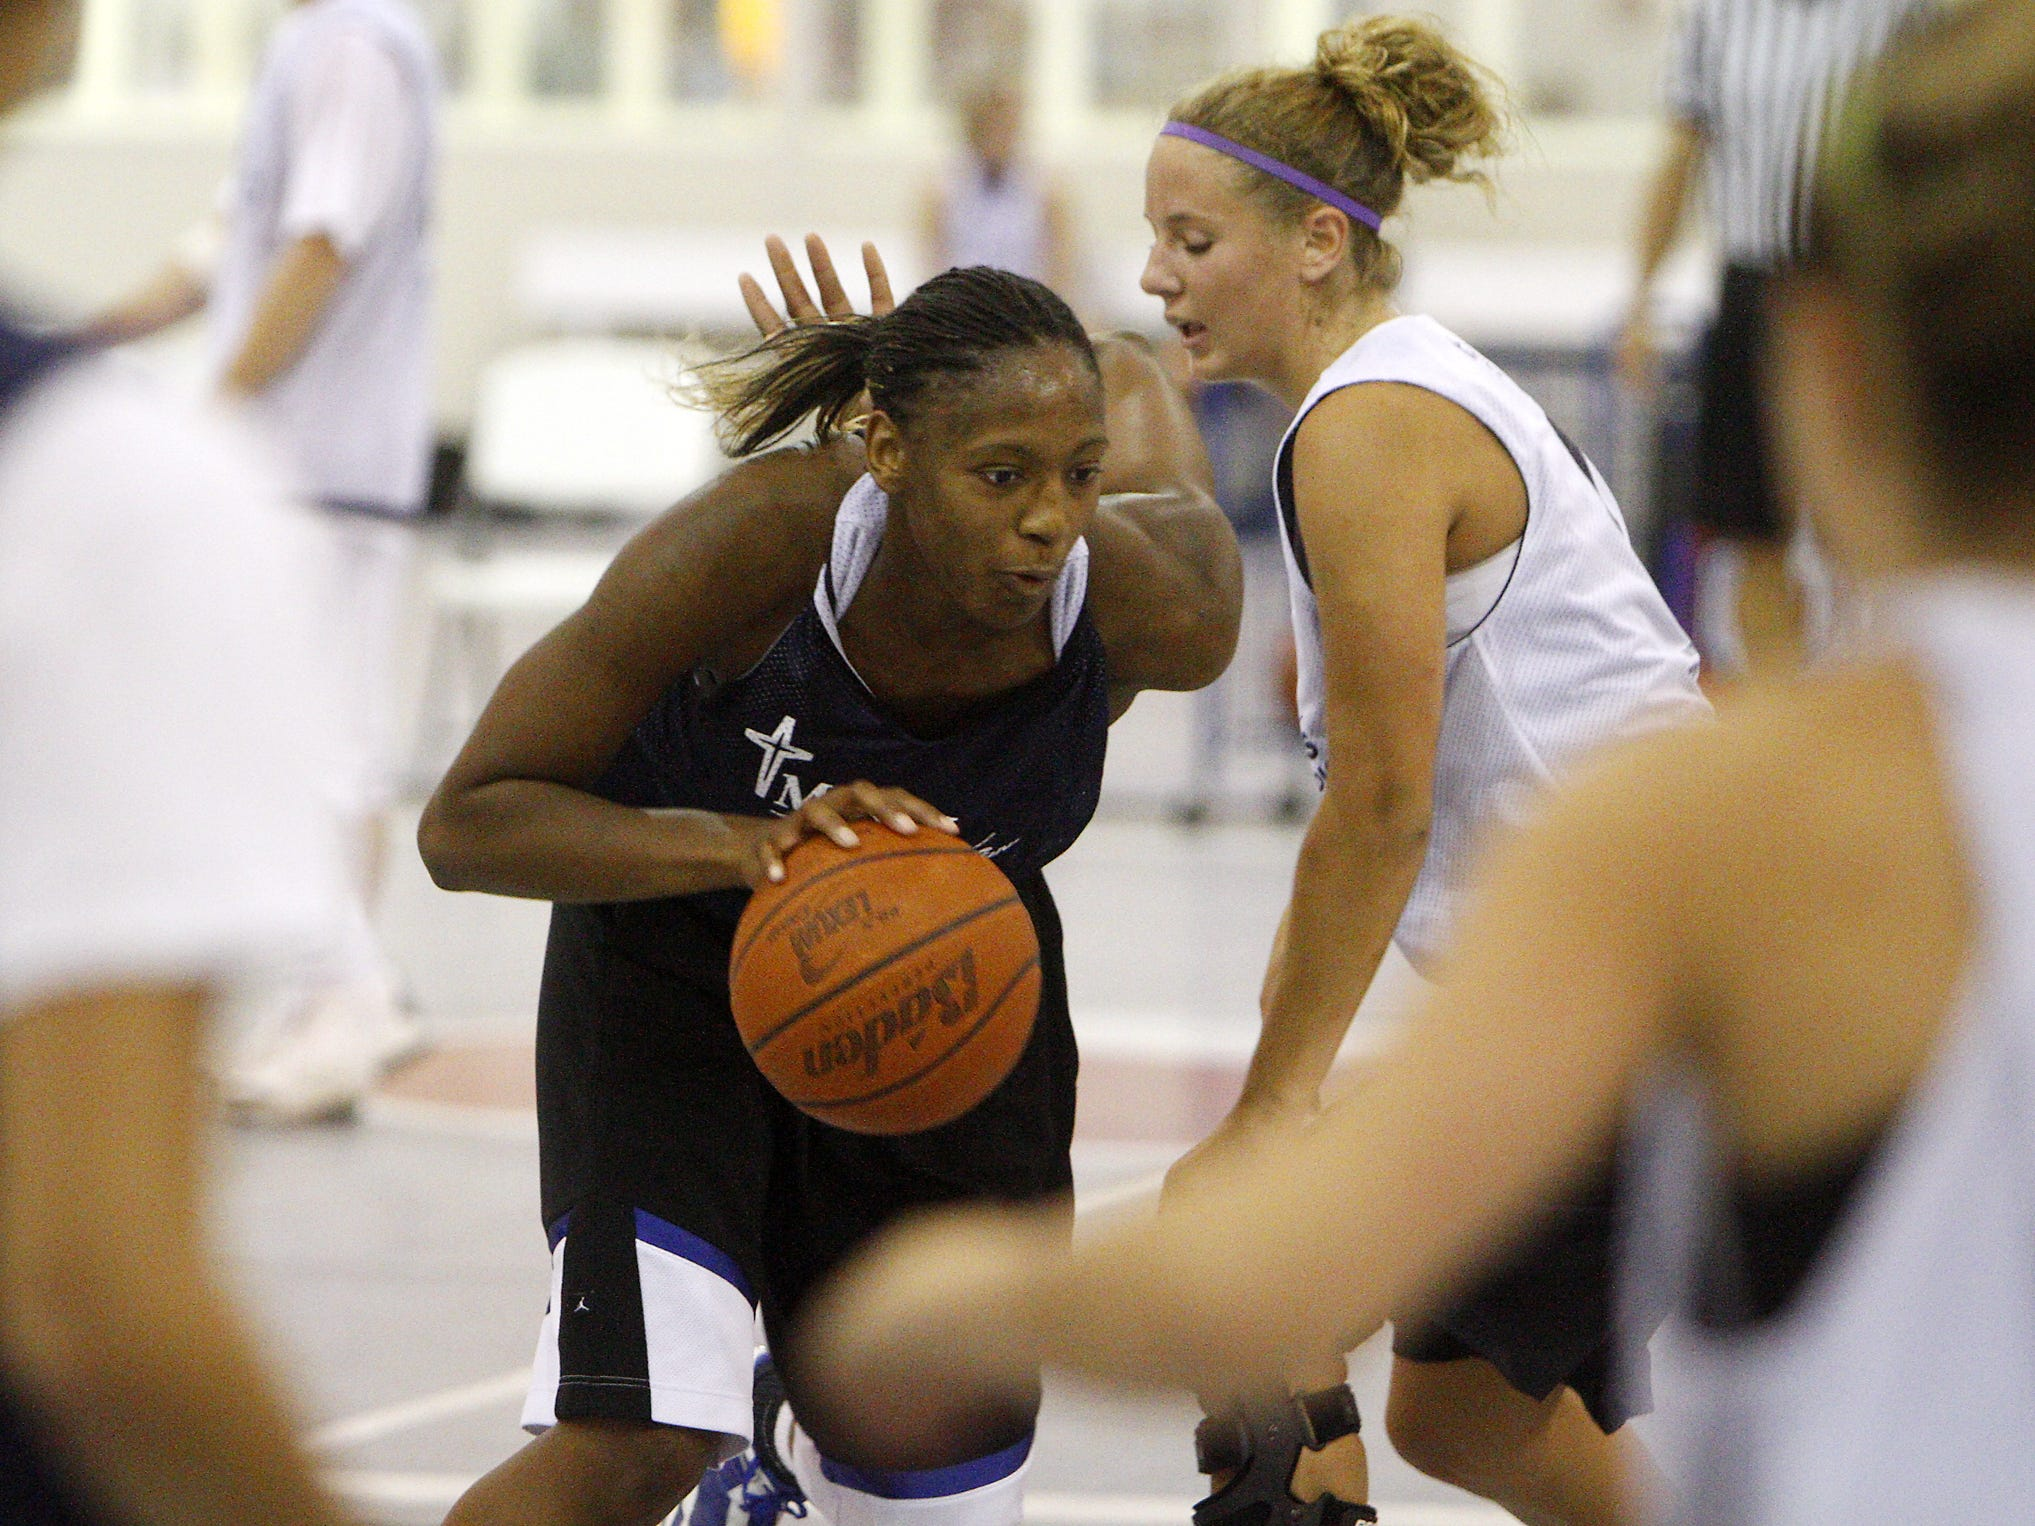 Tia Mays, left center, drives with the basketball during a game at the The Courts in Springfield, Missouri, Thursday, July 8, 2010.